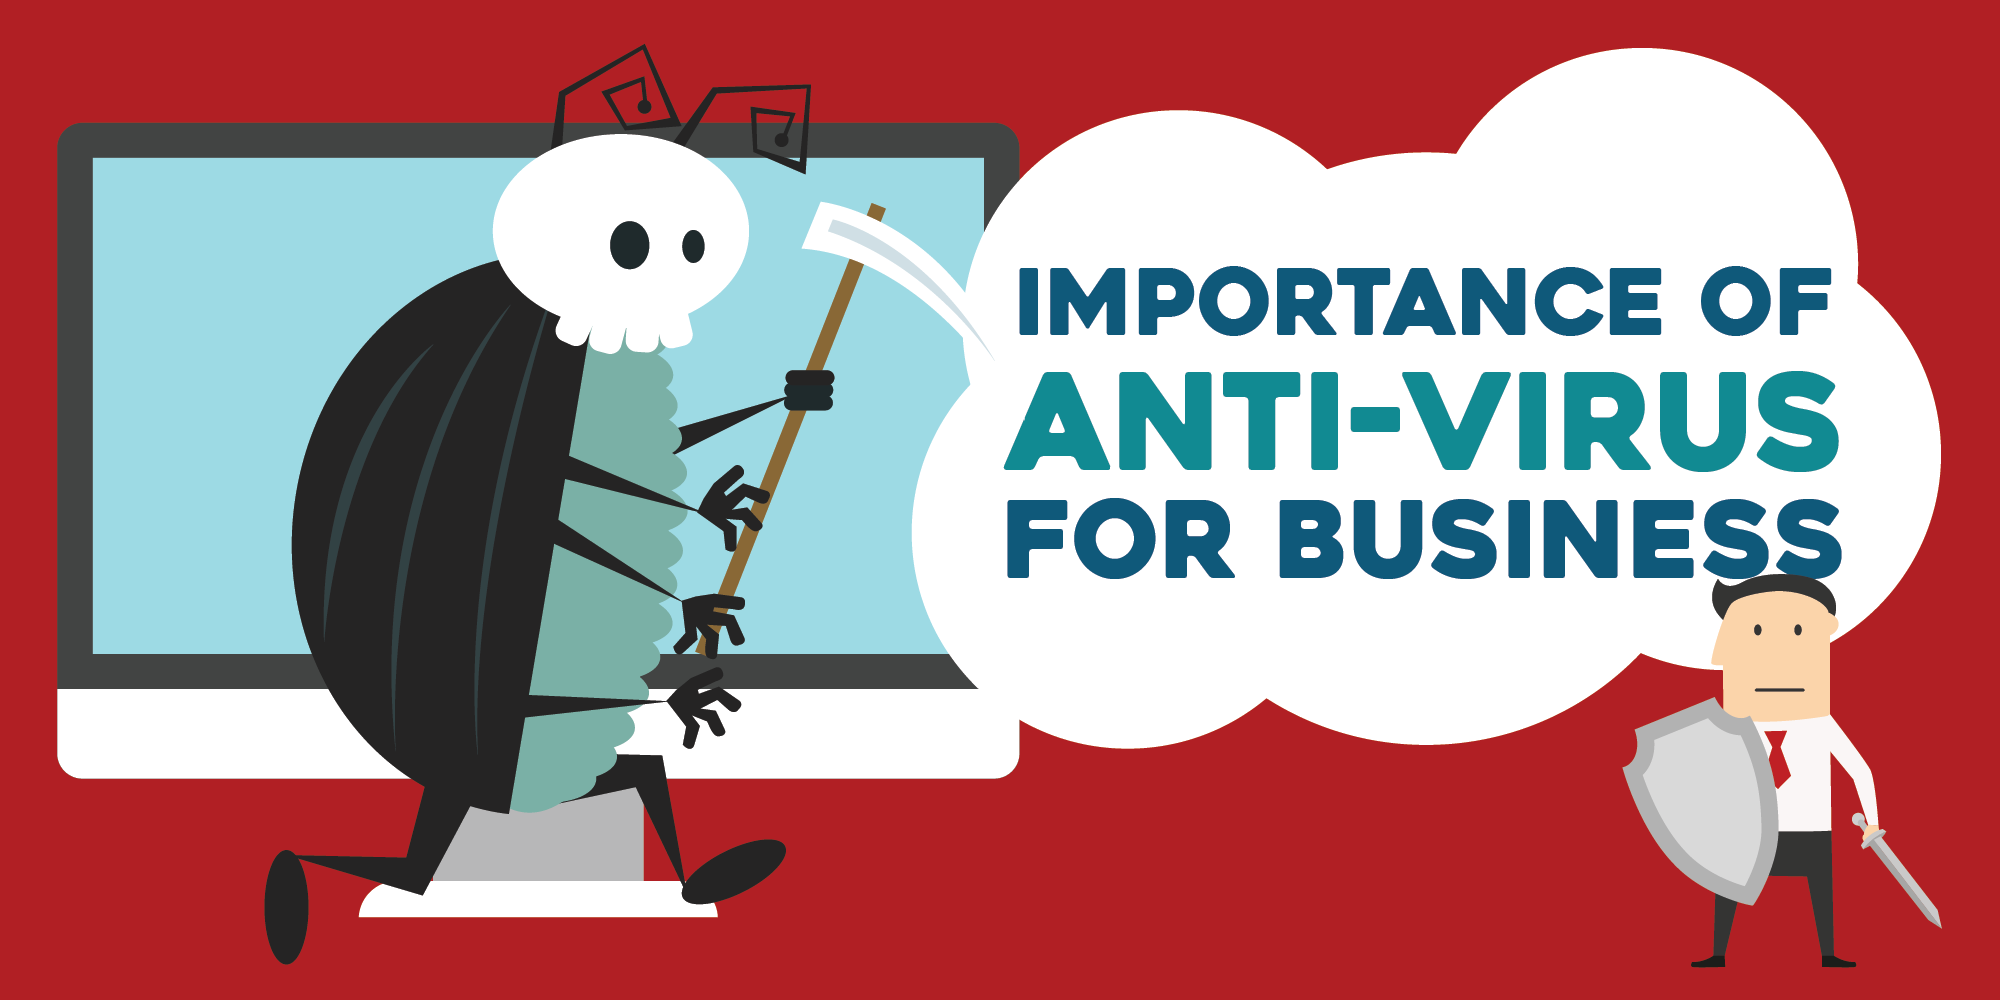 How Essential is Antivirus Software for Your Business